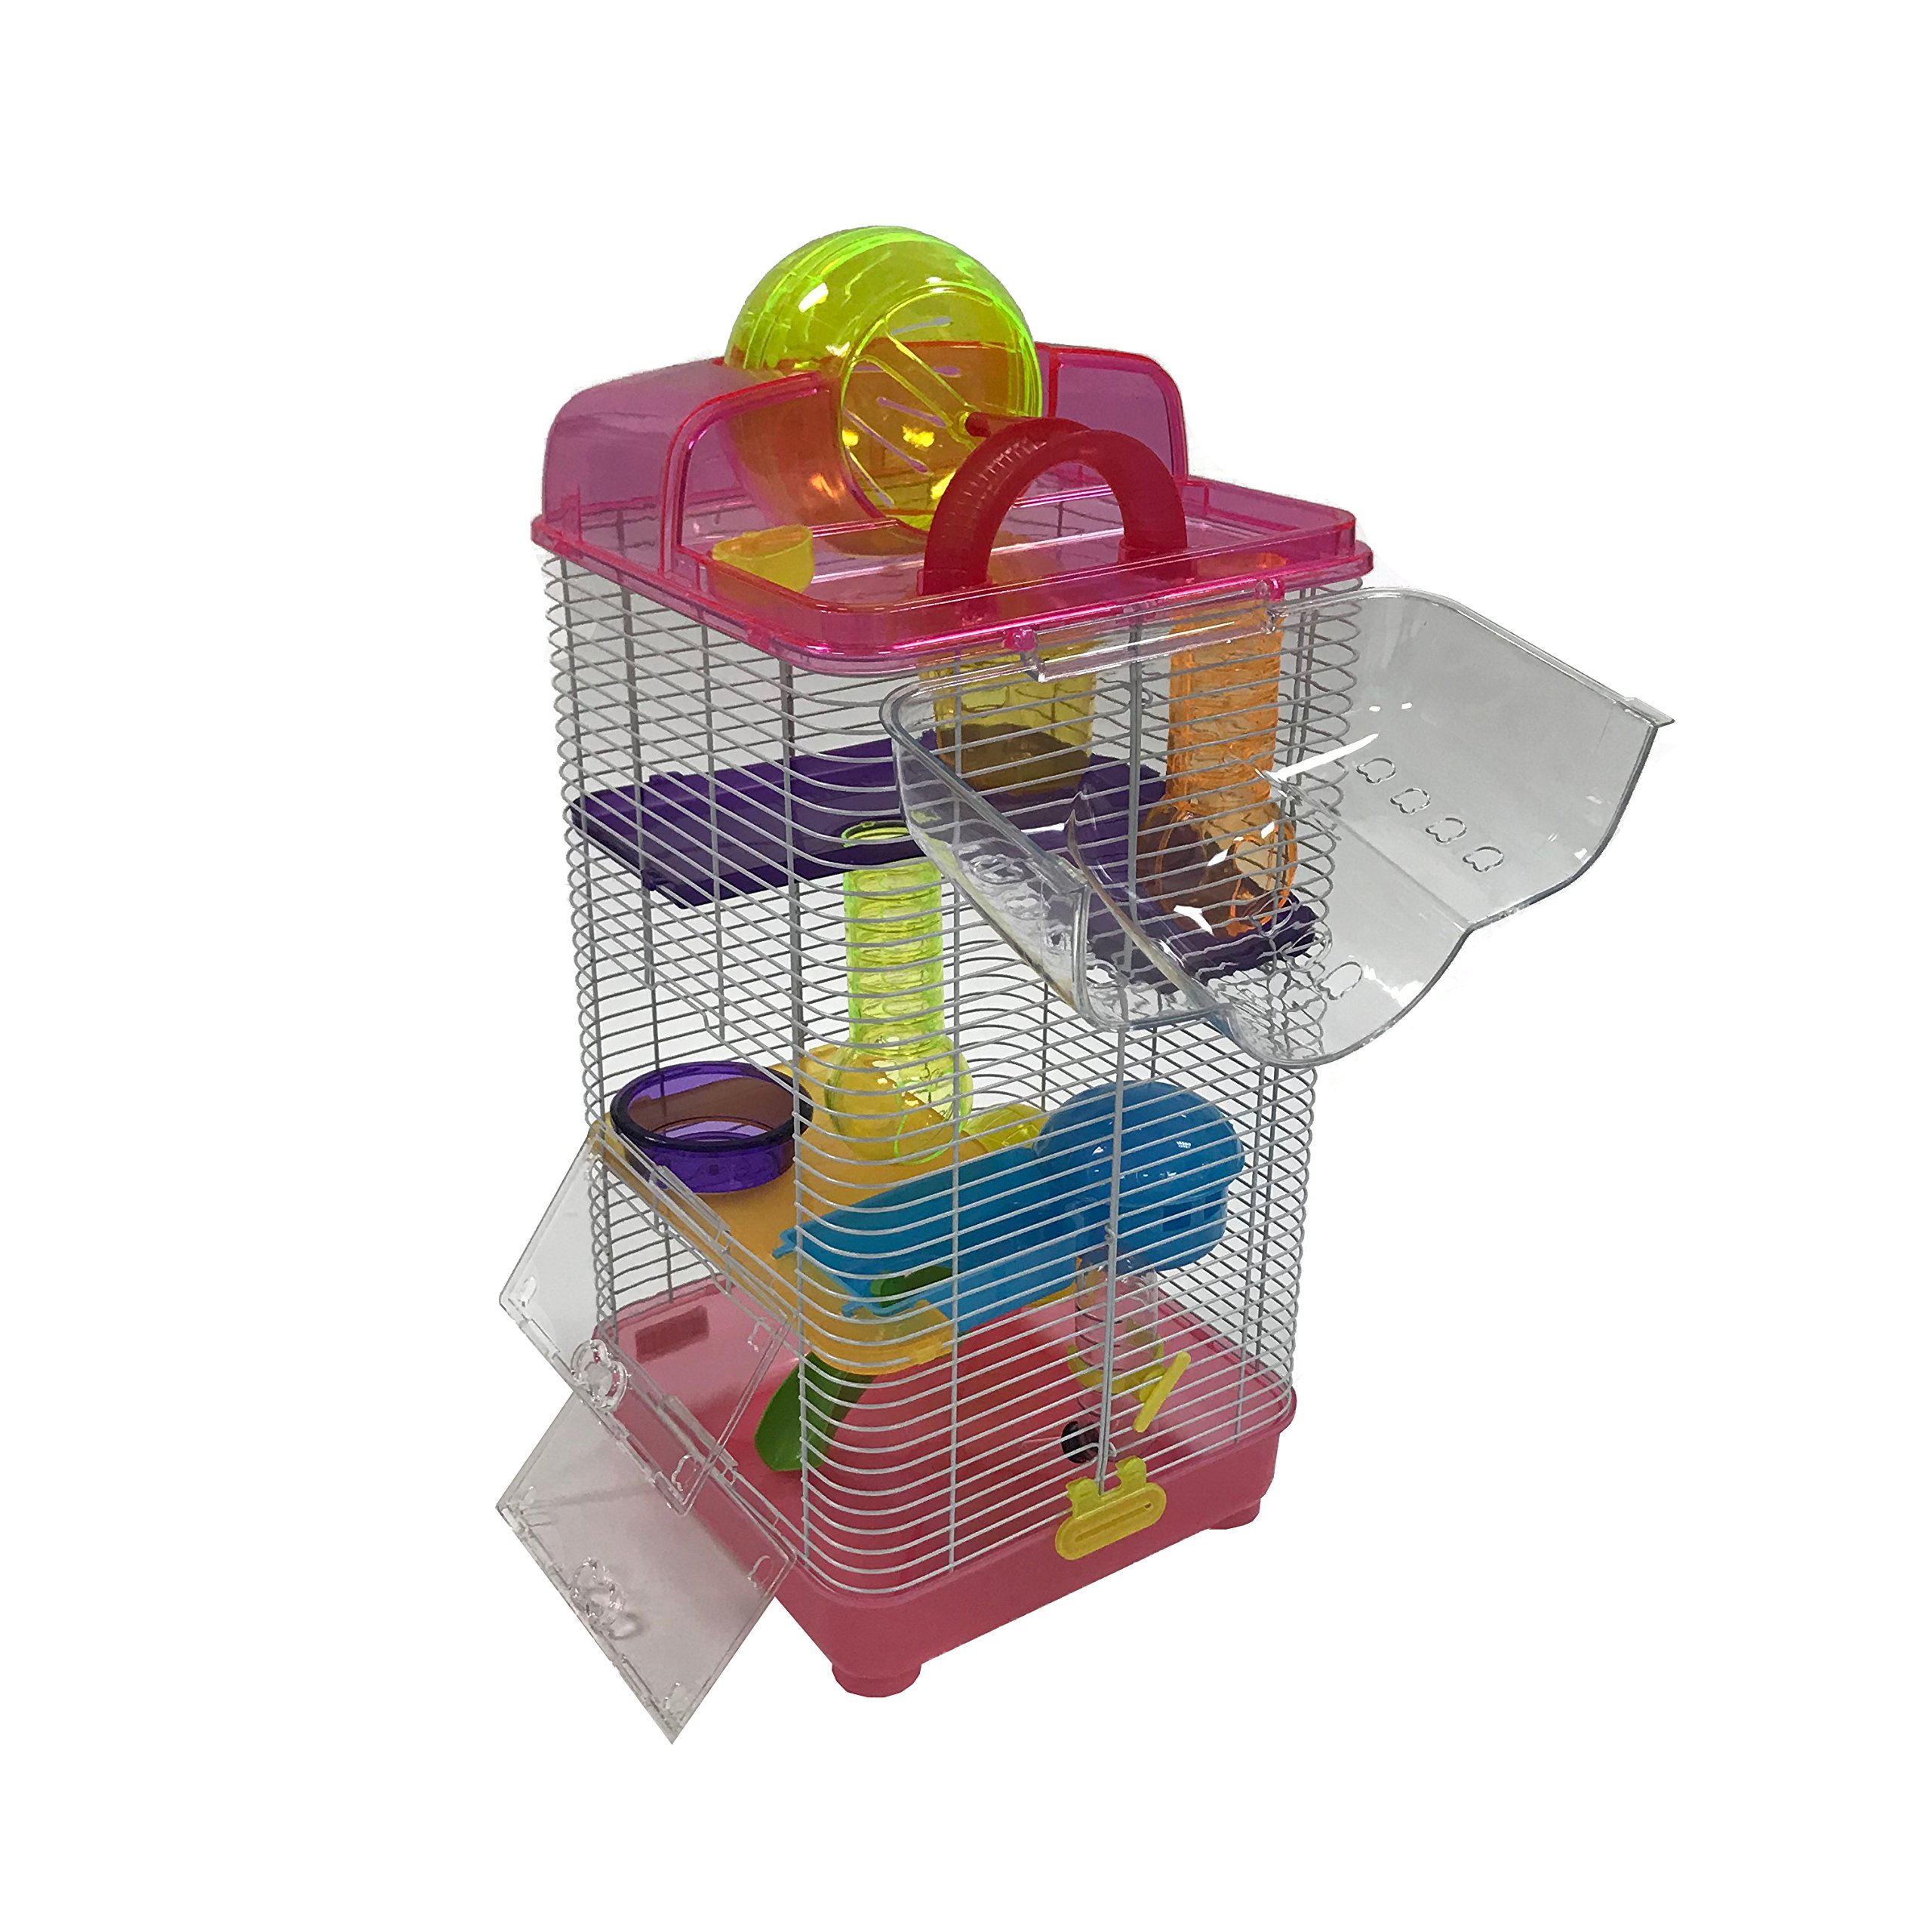 YML 3-Level Clear Plastic Dwarf Hamster Mice Cage with Ball on Top, Pink by YML (Image #2)